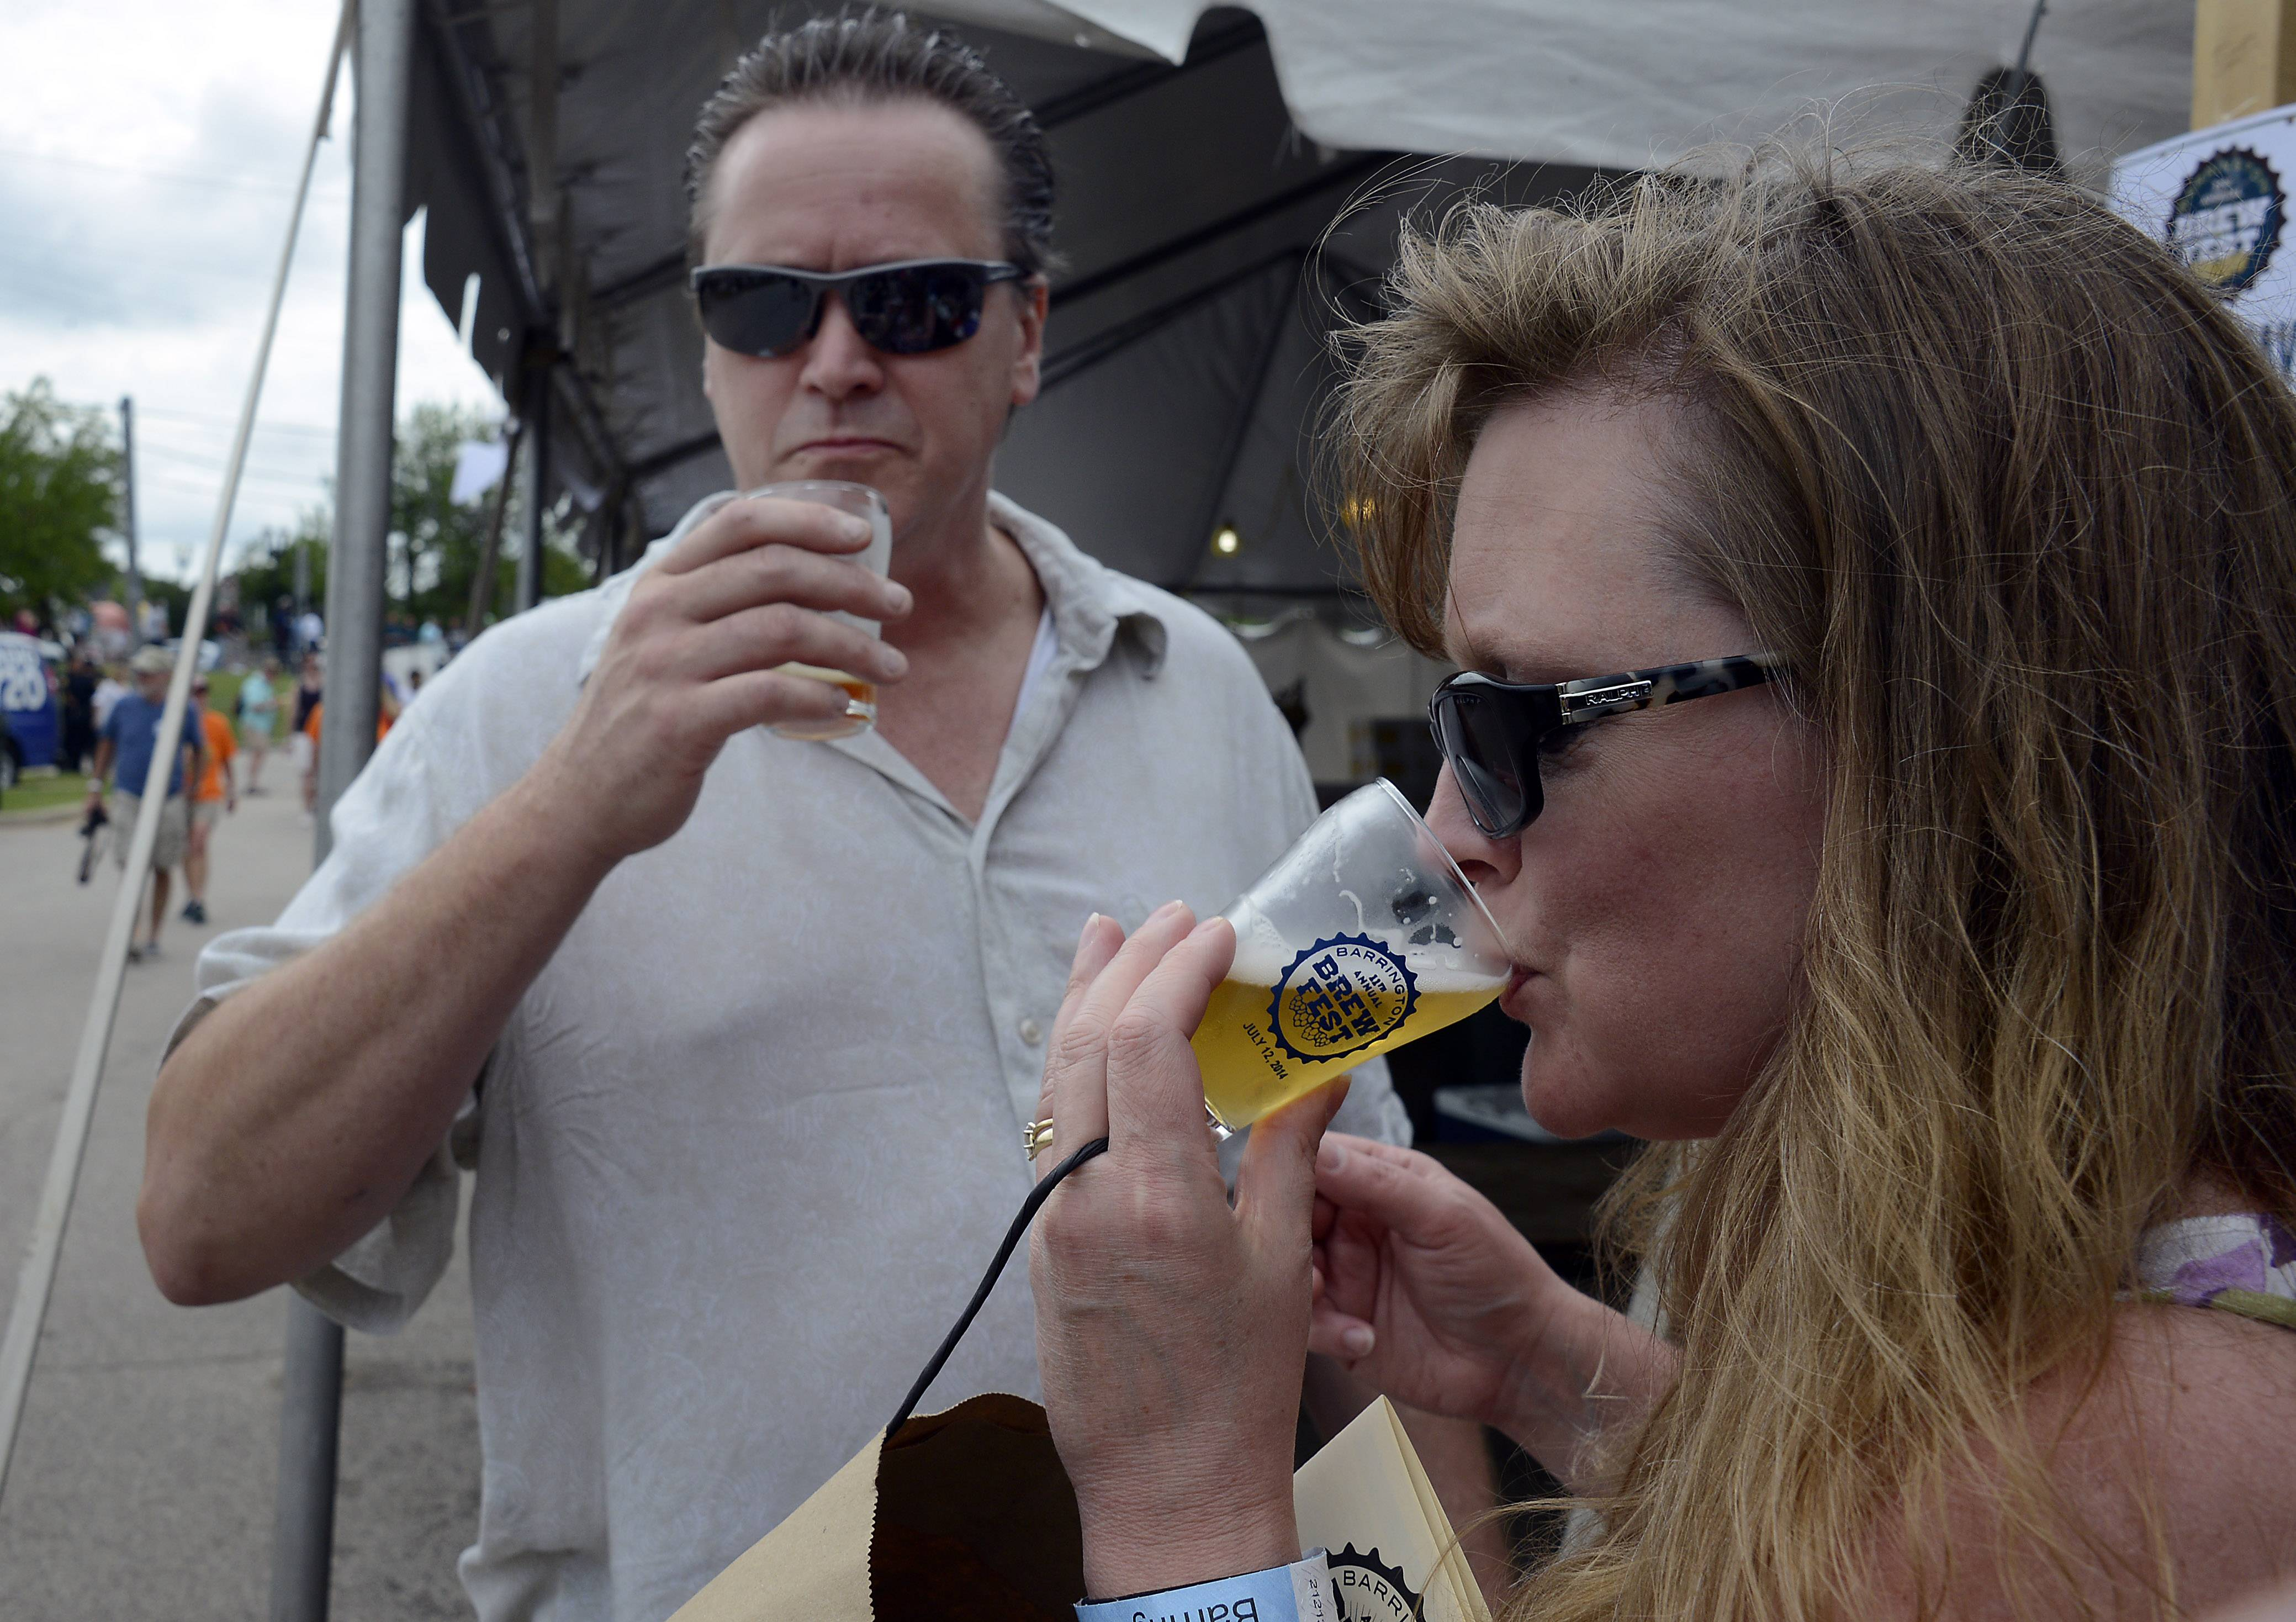 Mark Welsh/mwelsh@dailyherald.comMichael and Mary Utt of Des Plaines sample the Southern Pecan beer from the Lazy Magnolia Brewing Company in Mississippi at the 11th annual Brew Fest in Barrington to open on Saturday.